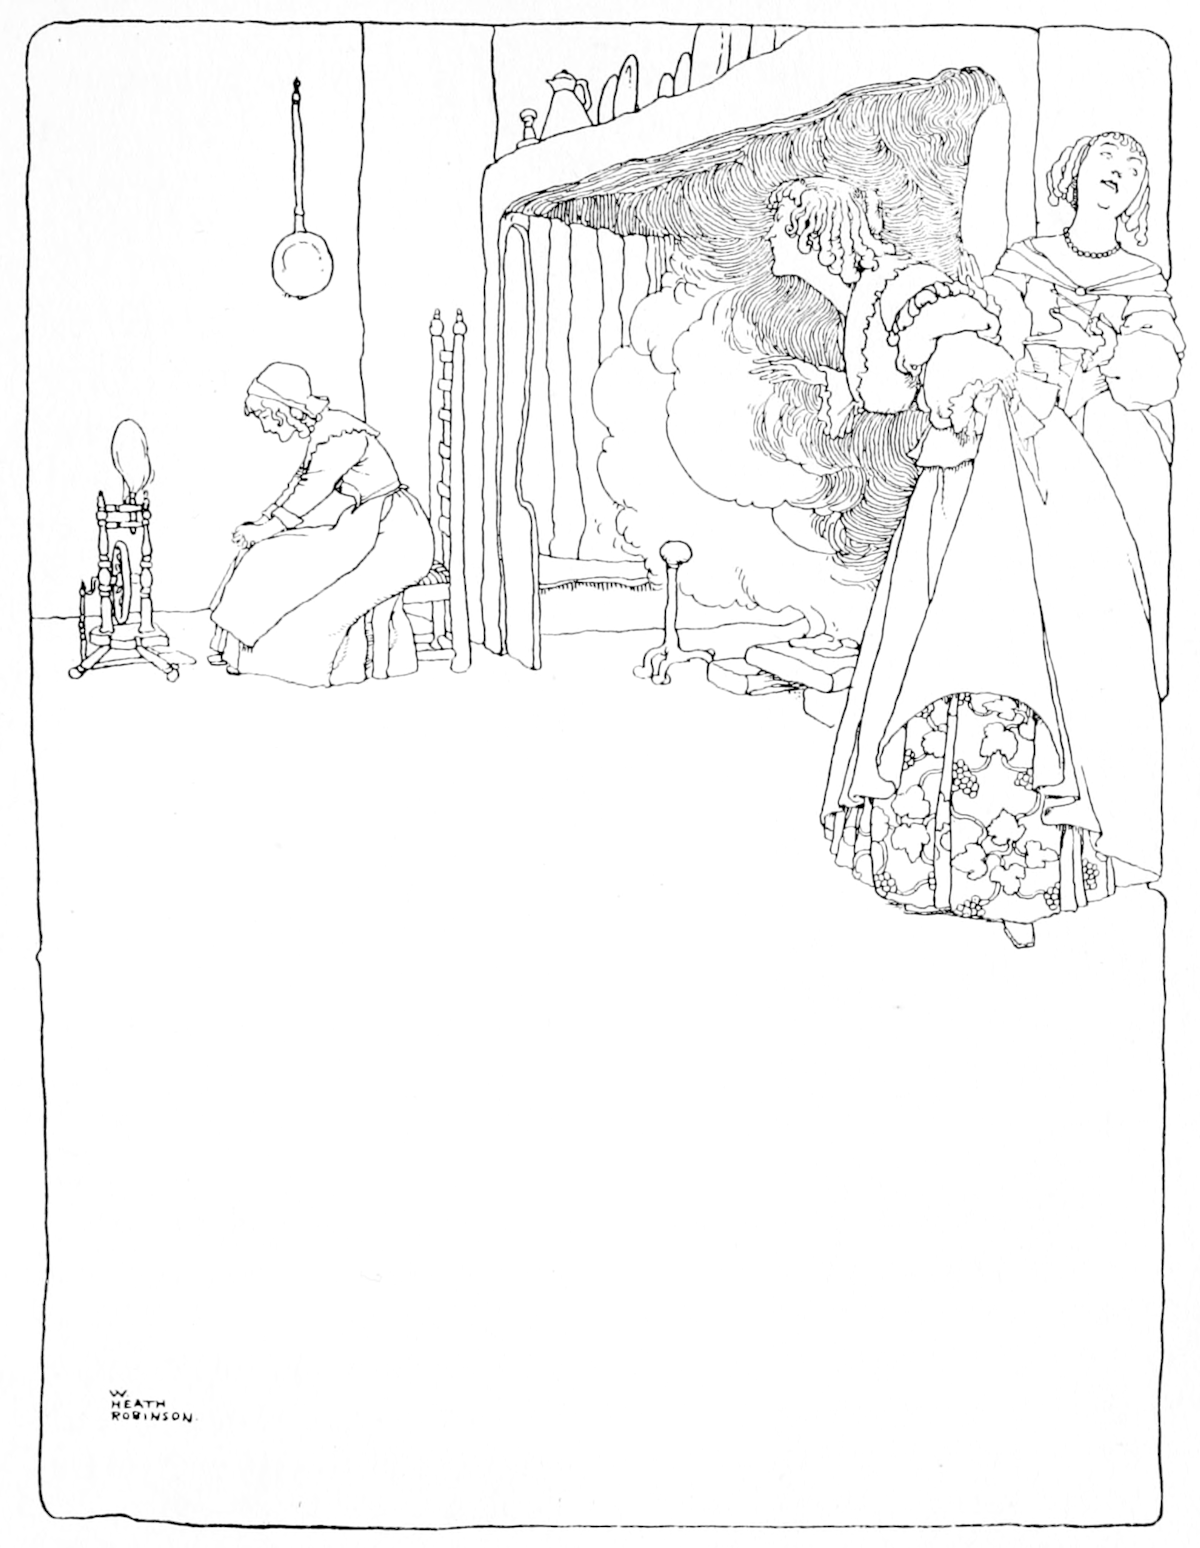 File:Page 117 of Old time stories (Perrault, Robinson).png